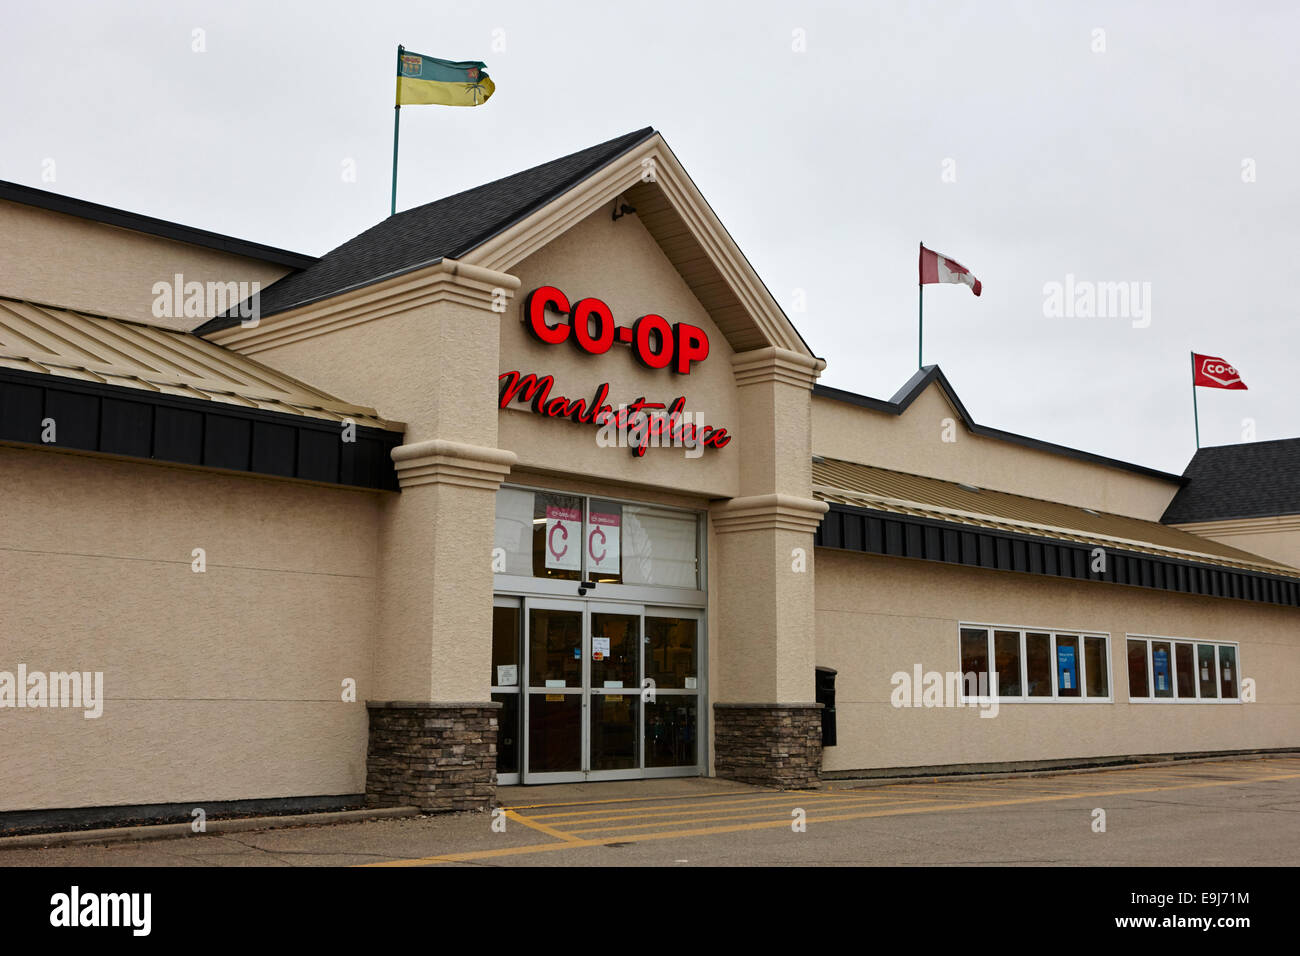 co-op marketplace supermarket weyburn Saskatchewan Canada - Stock Image